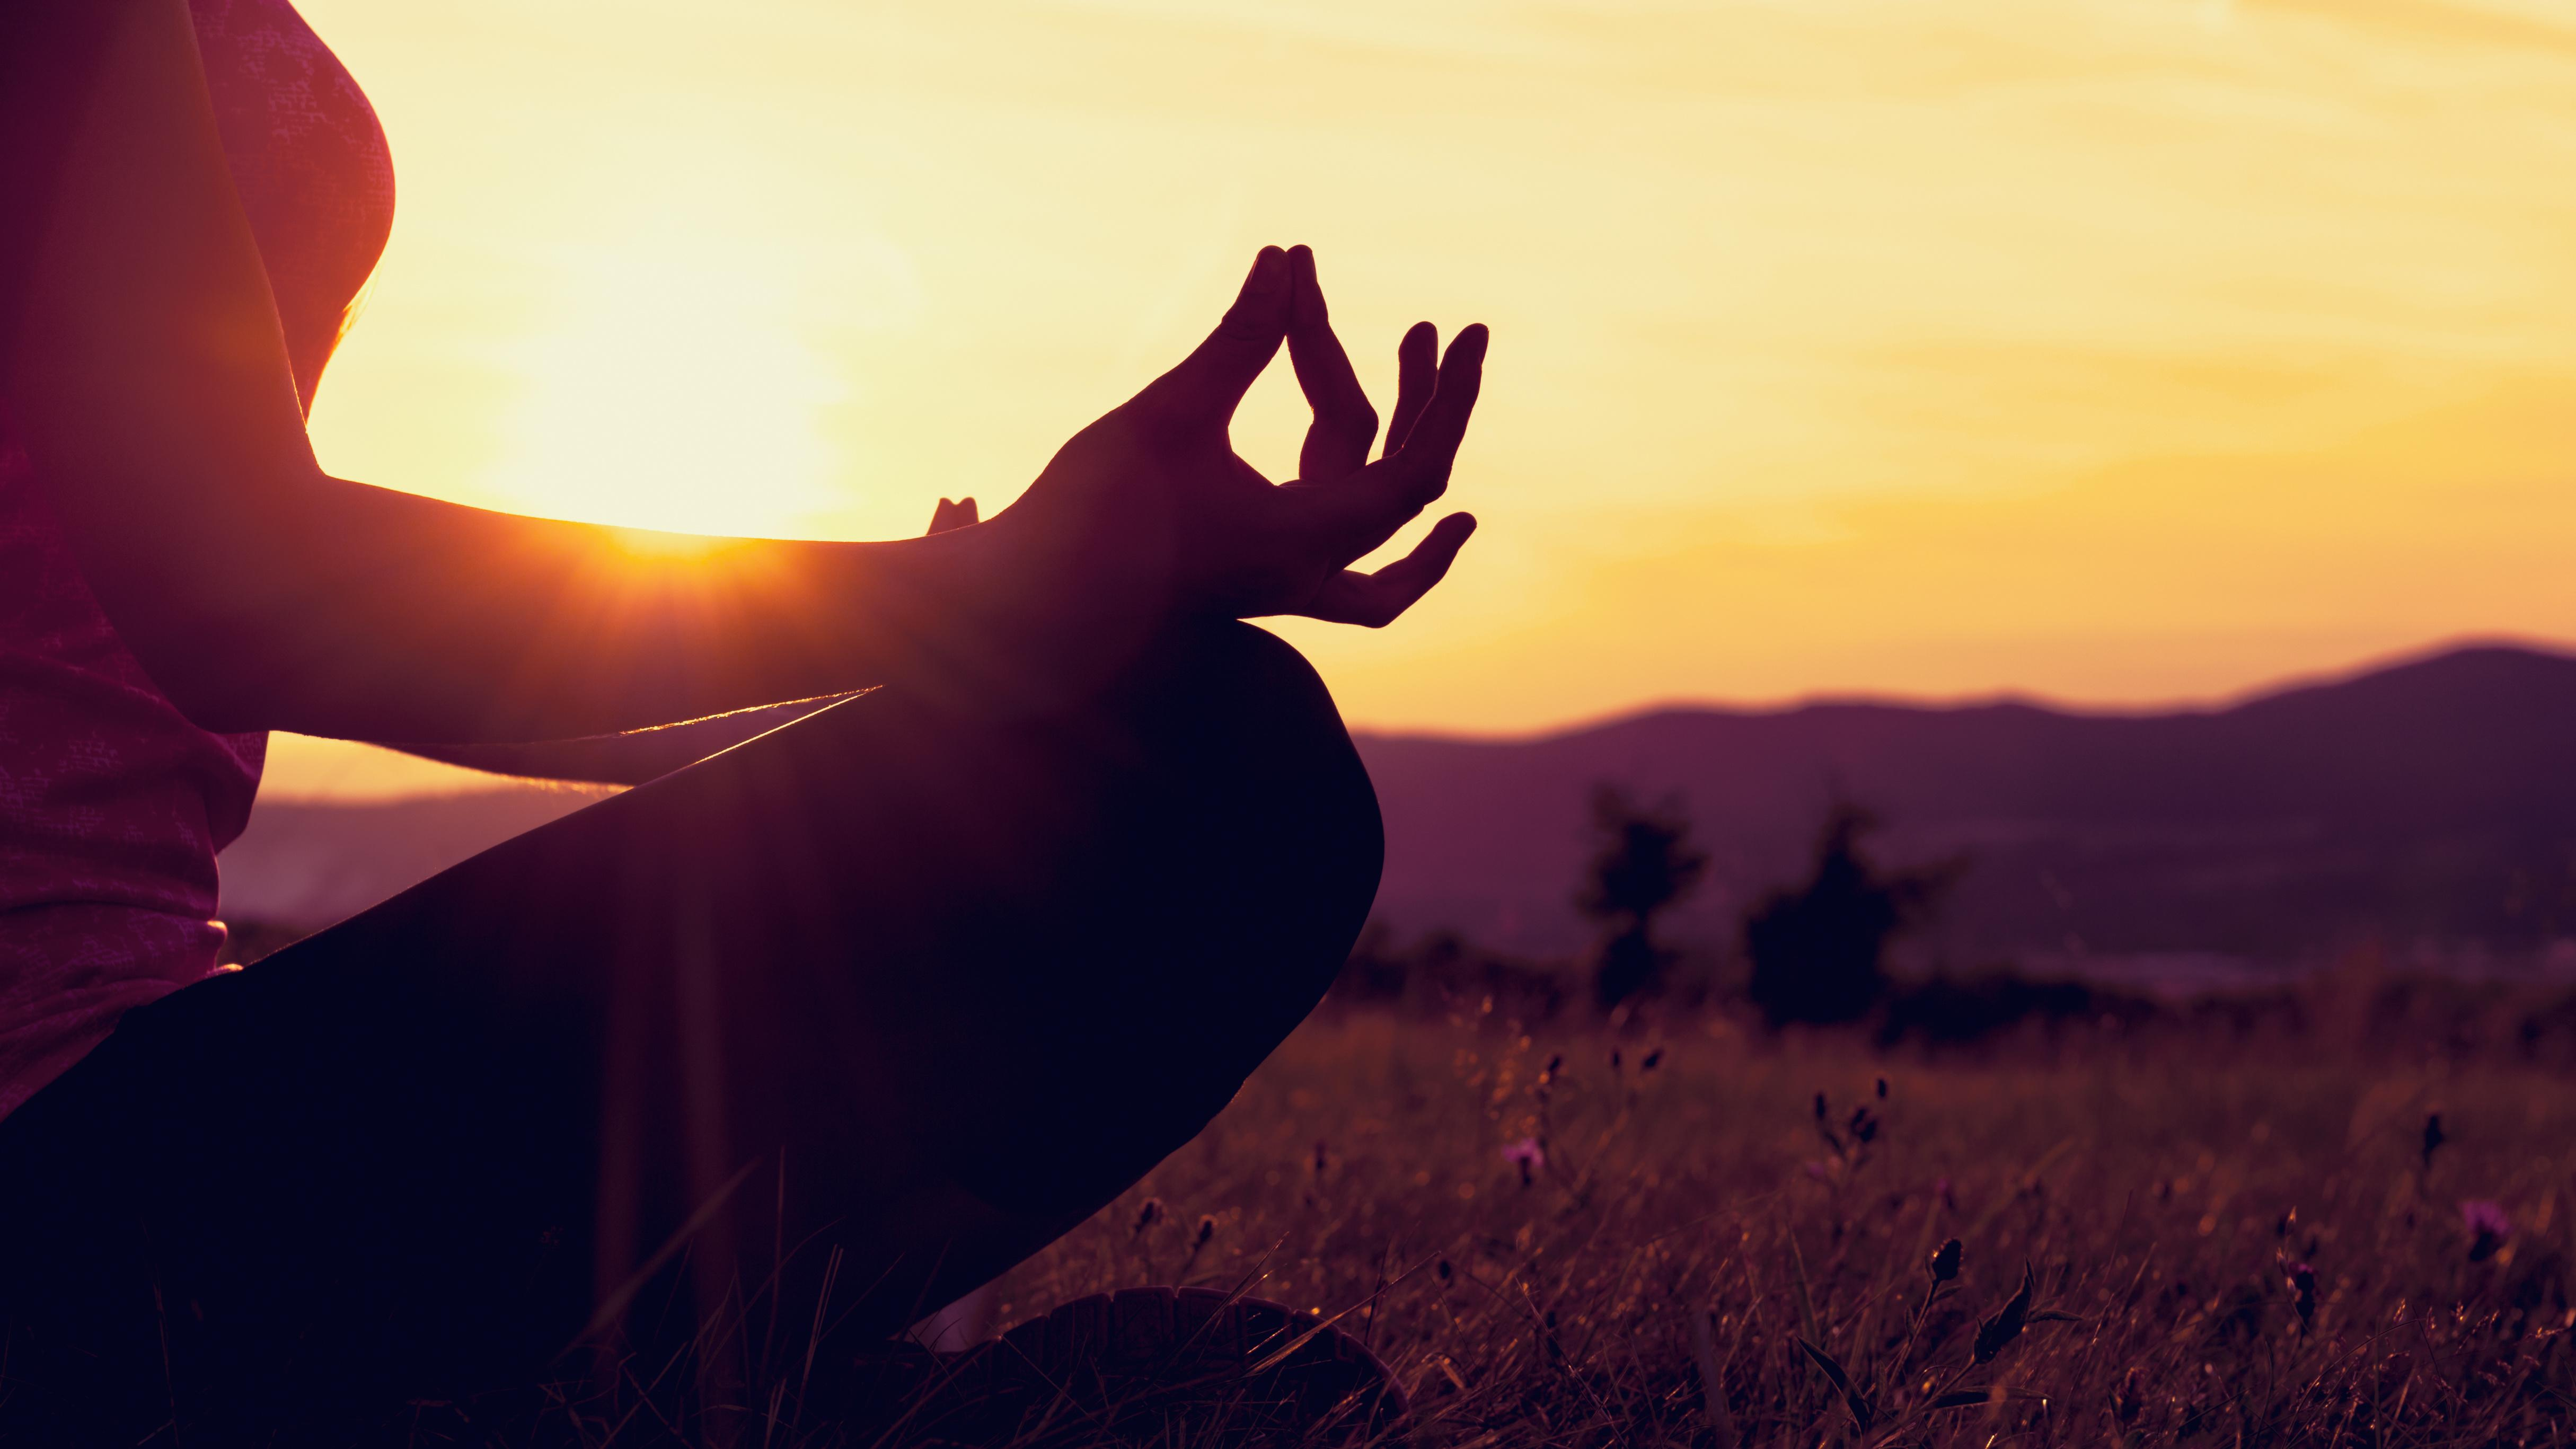 Meditation Could Make Your Brain 7 Years Younger